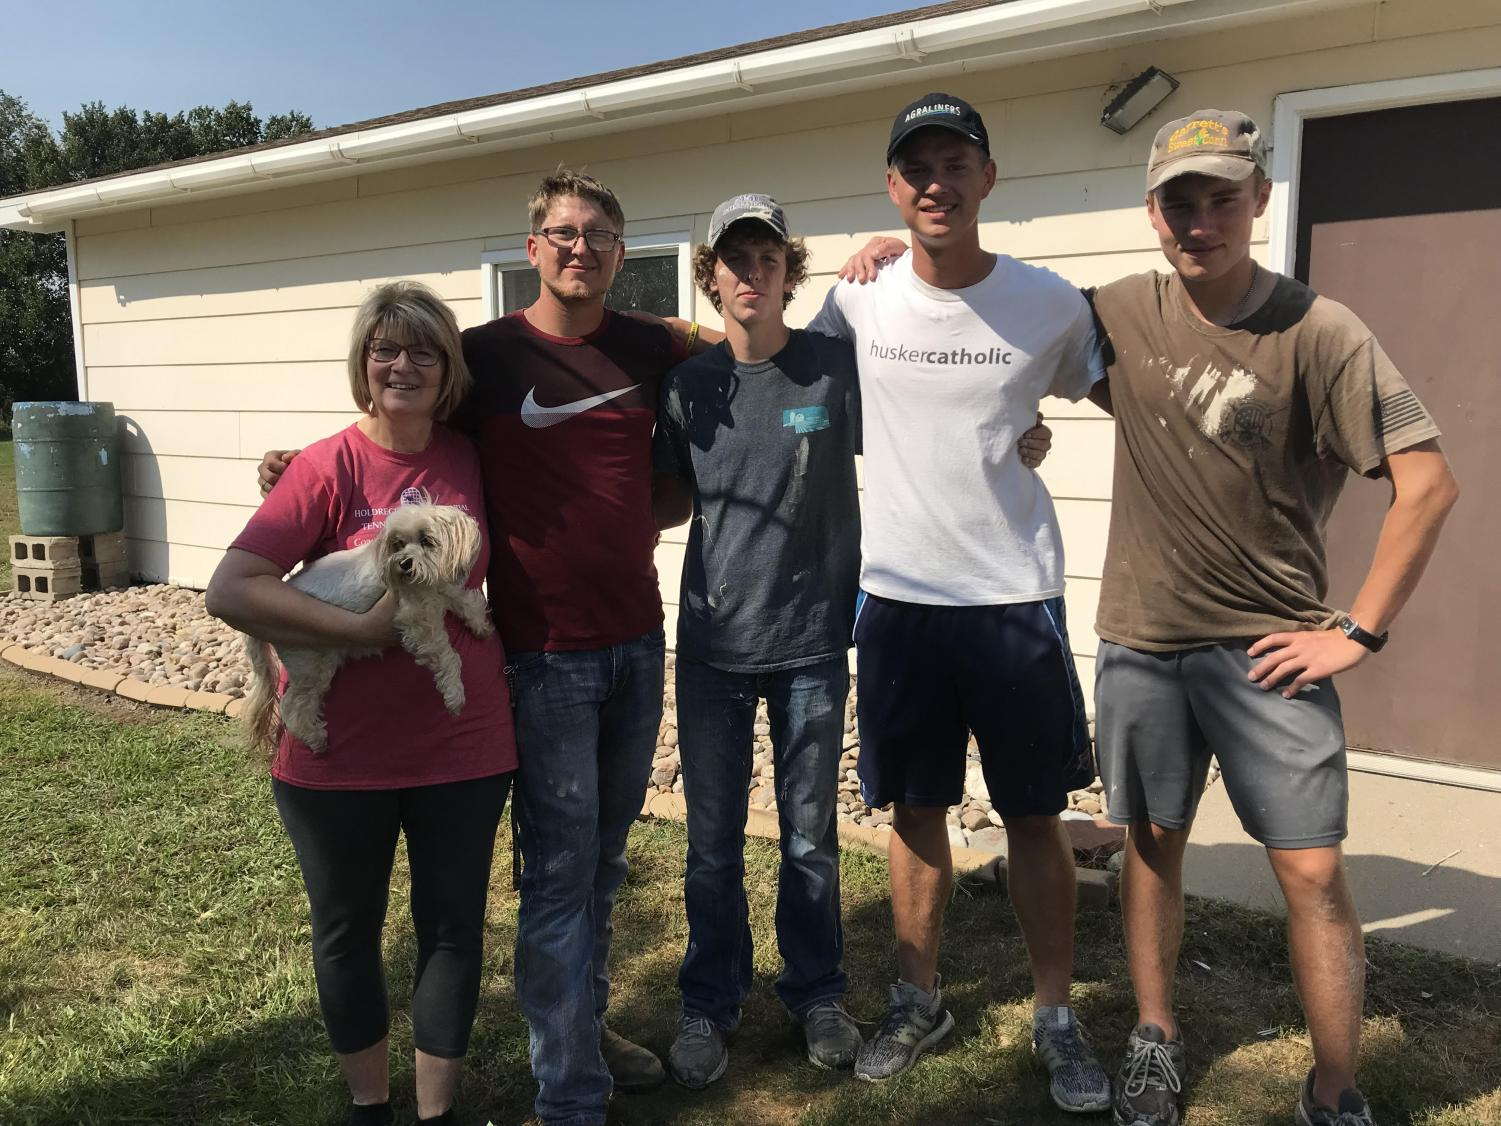 Four members of the tennis team - Eli Borden, Harrison Elliot, Parker Hamling and Garrett Ehrenberg - helped Karla Ruybalid around her home on